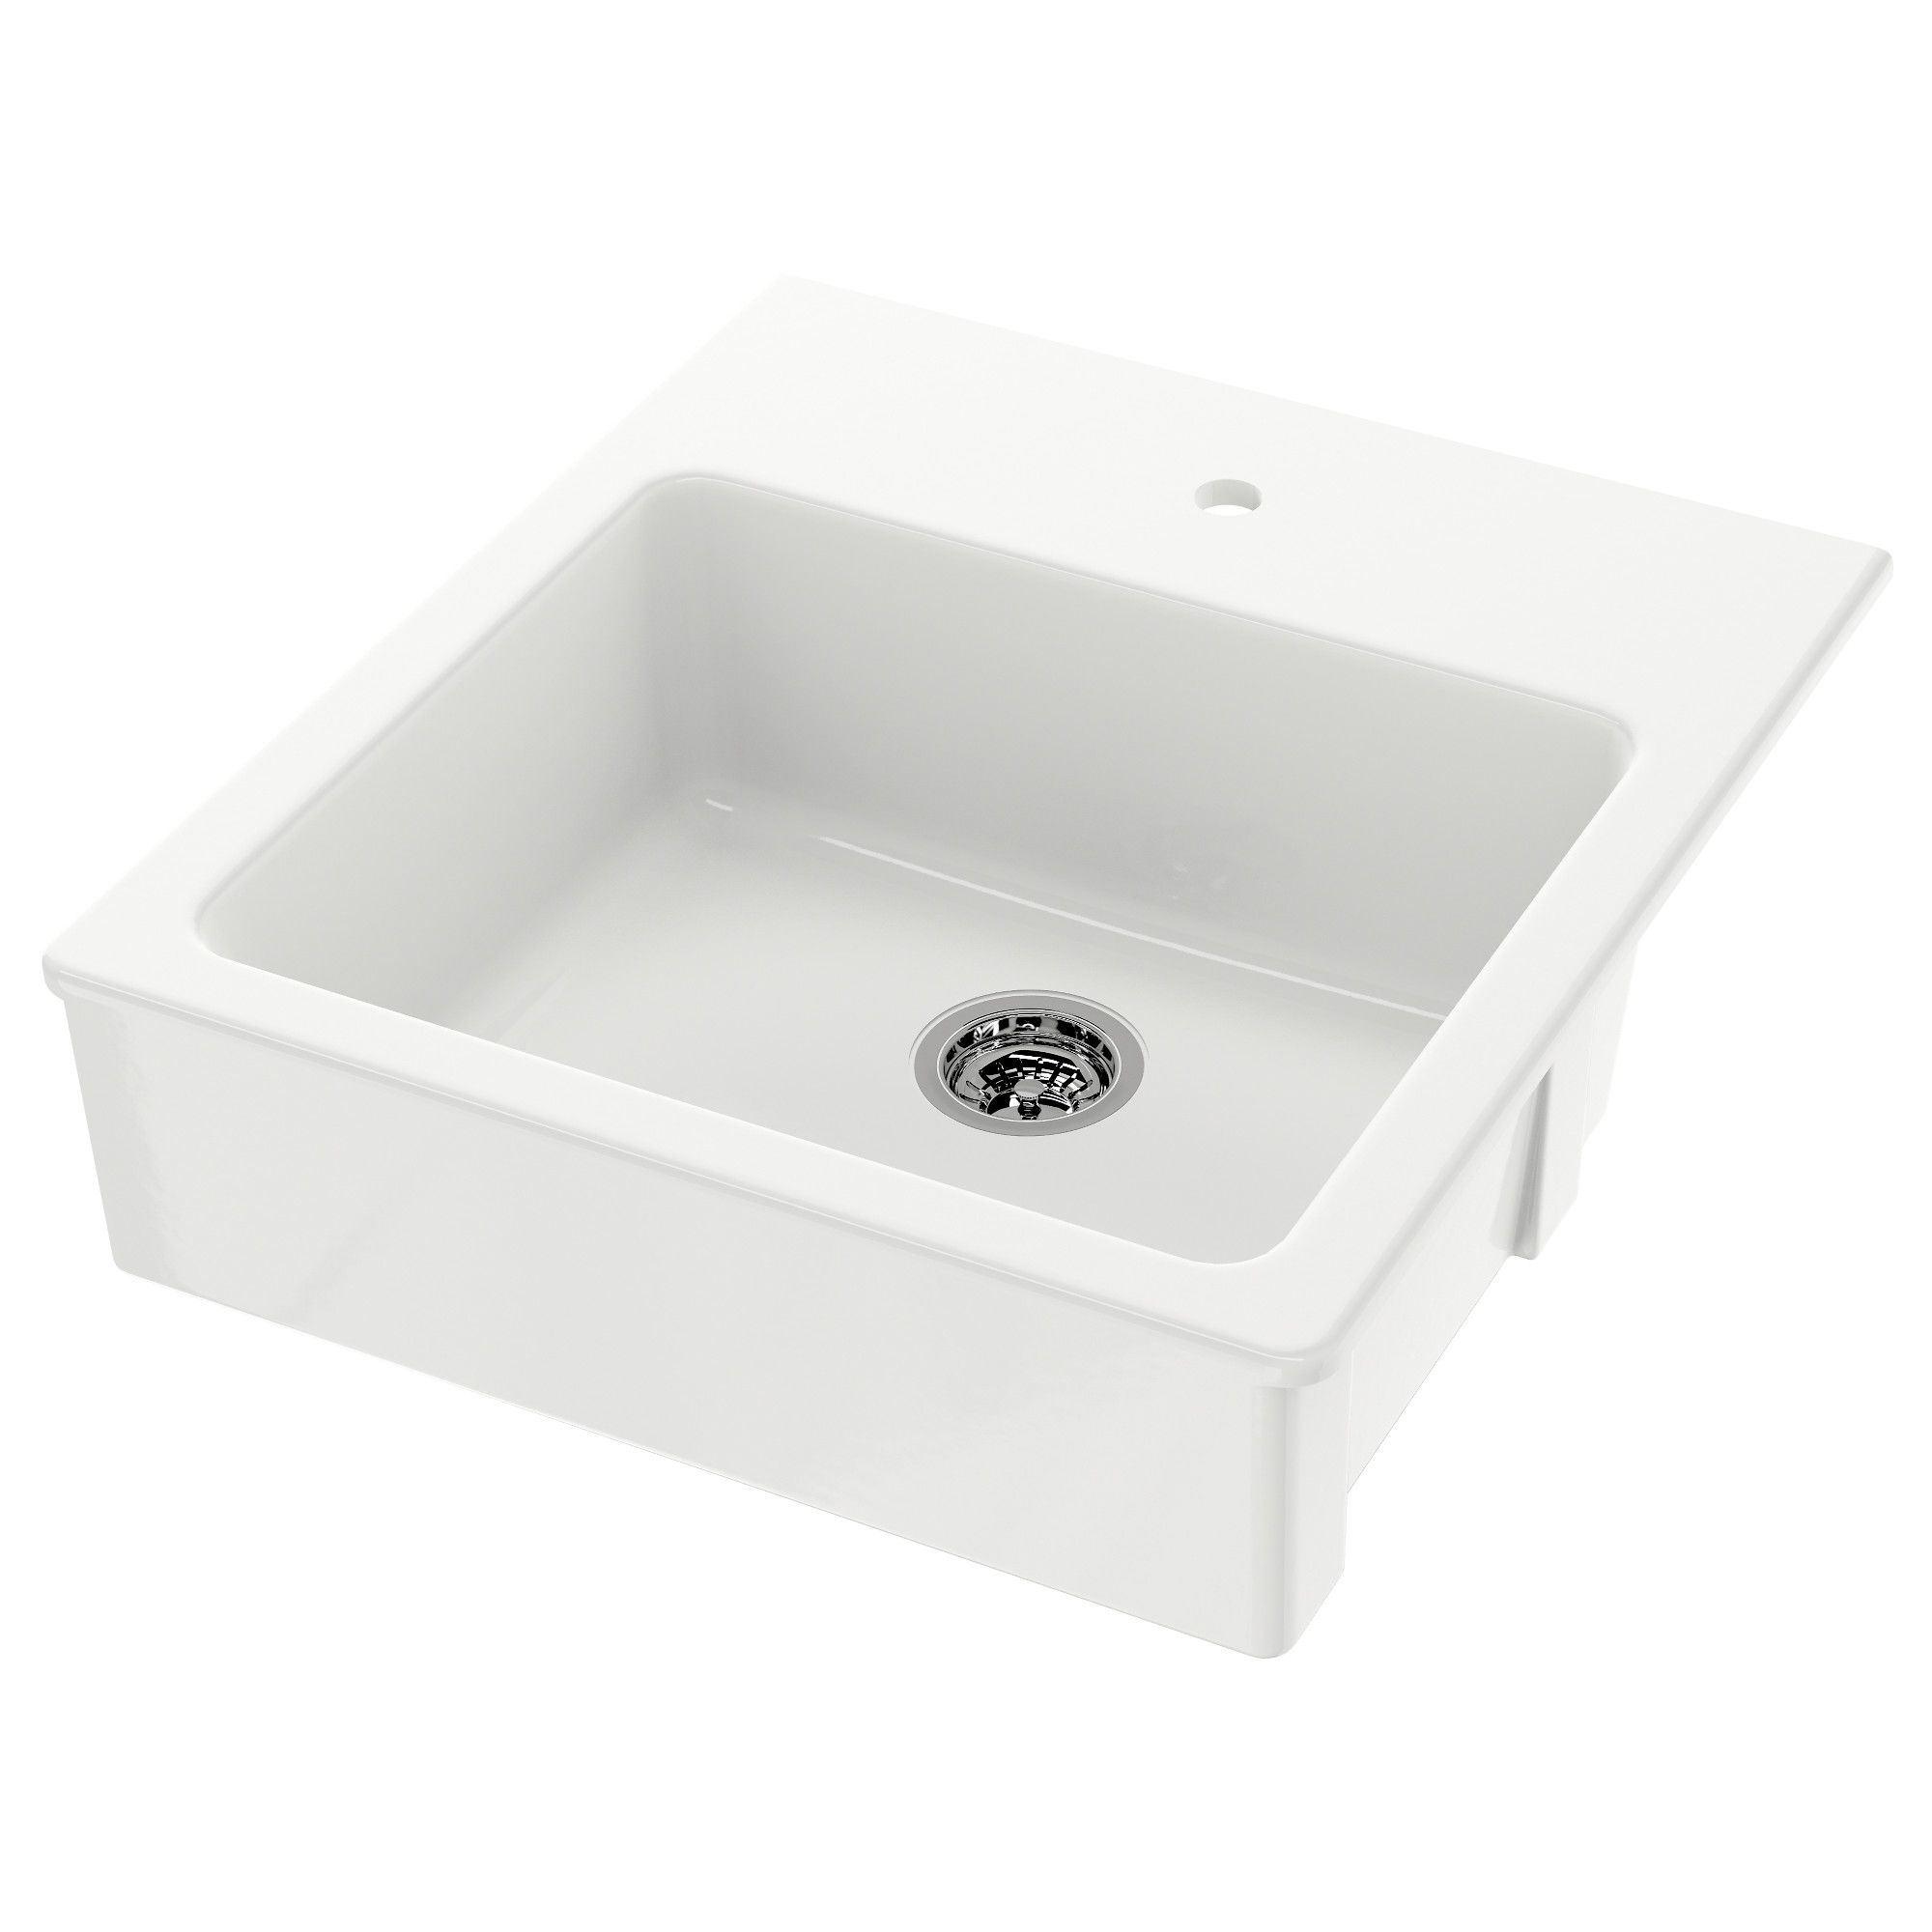 Ikea Domsj Sink Bowl 25year Limited Warranty Read About The